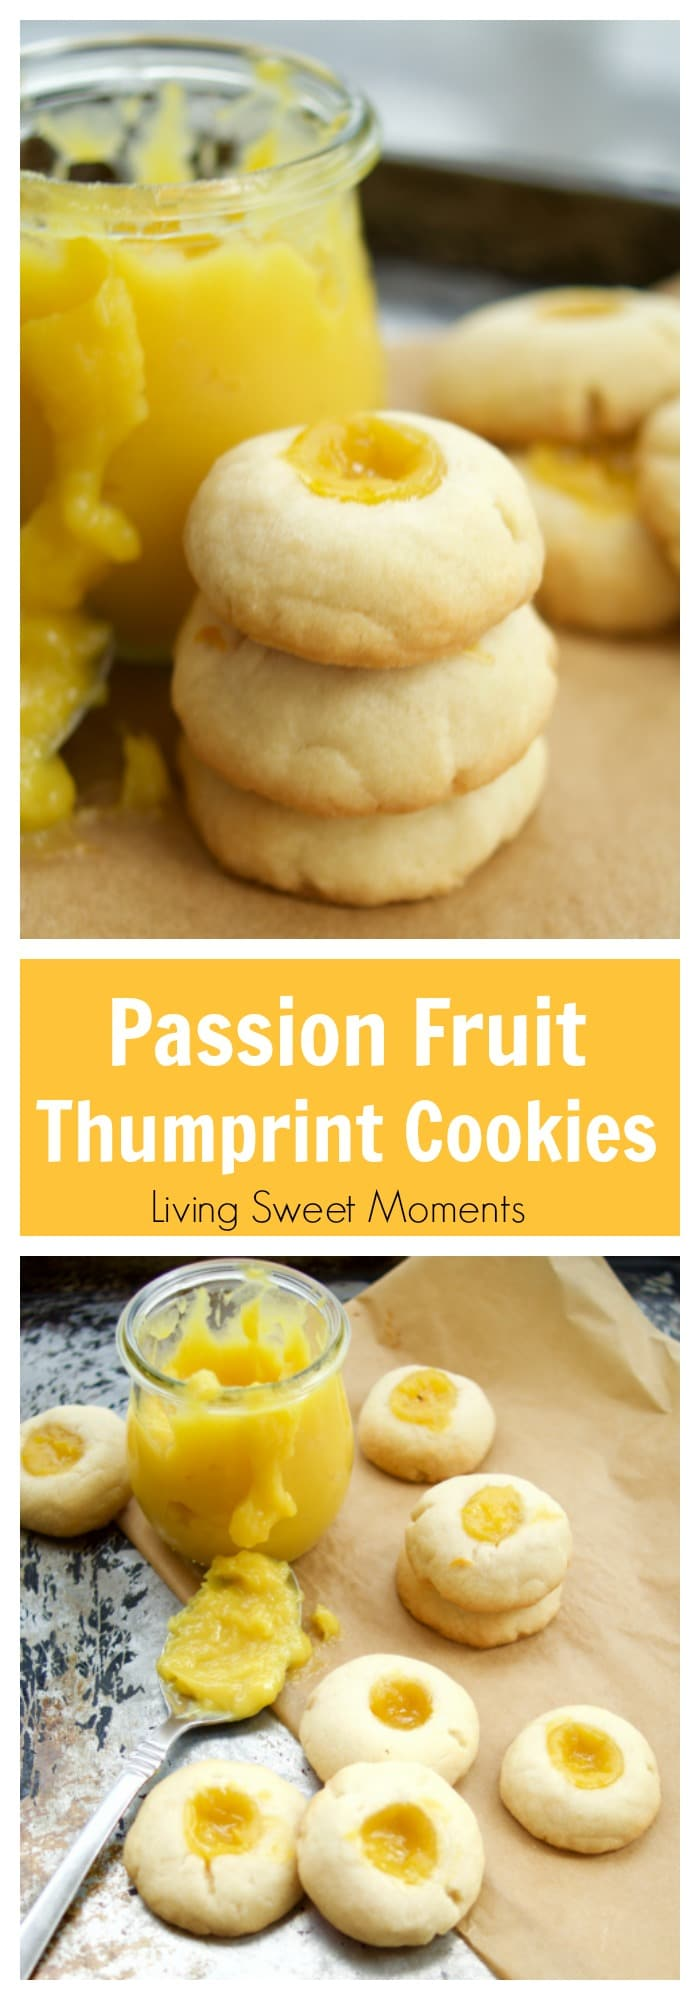 This delicious thumbprint cookie recipe is made with homemade passion fruit curd in a shortbread cookie dough. Perfect for dessert and tea. Yummy!